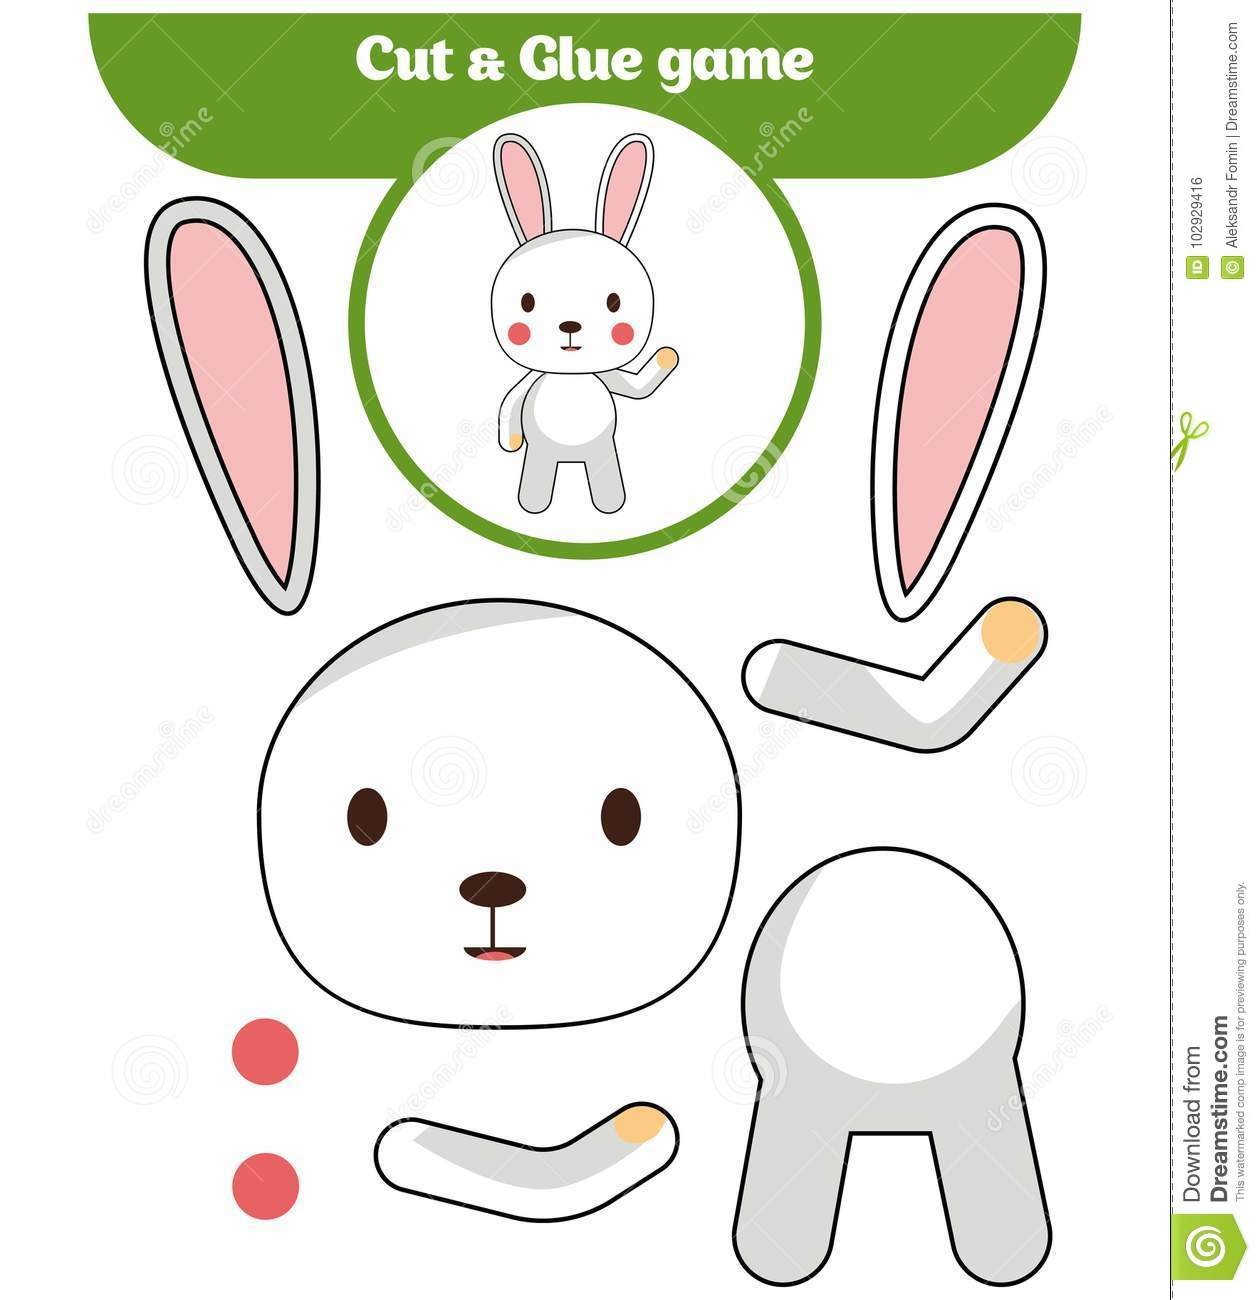 Paper Game For The Development Of Preschool Children Cut Parts Of The Image And Glue On The